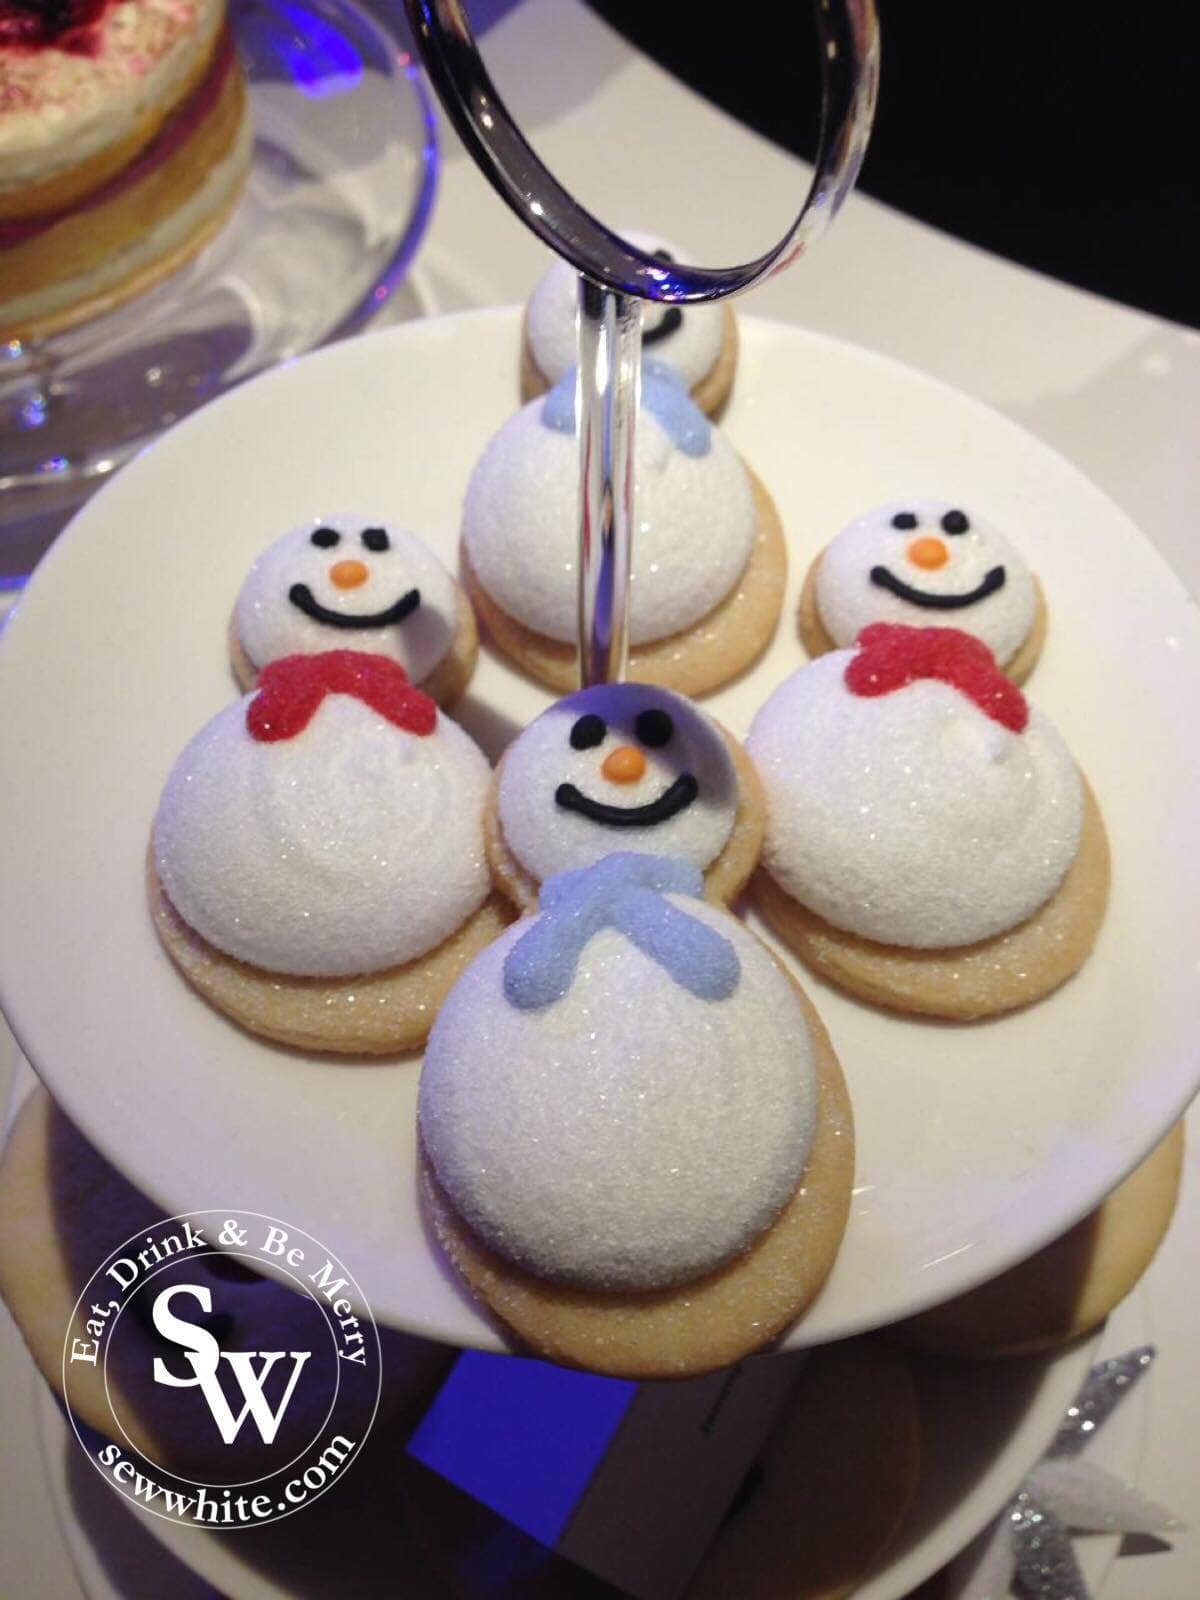 sparkly snowman shortbread with marshmallow tops at the Morrison's Christmas Showcase